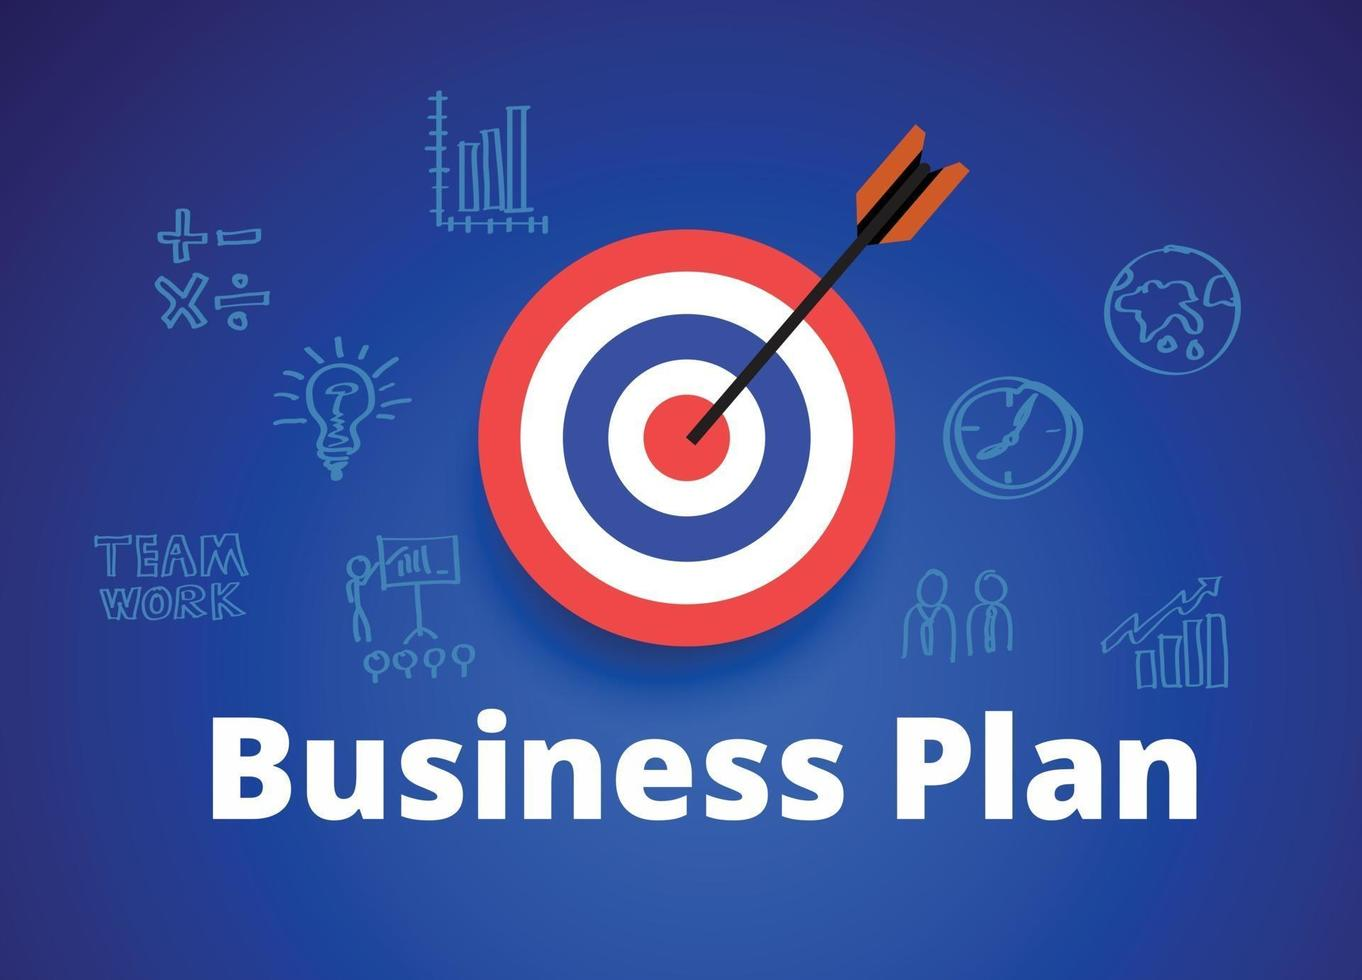 Business plan with a target